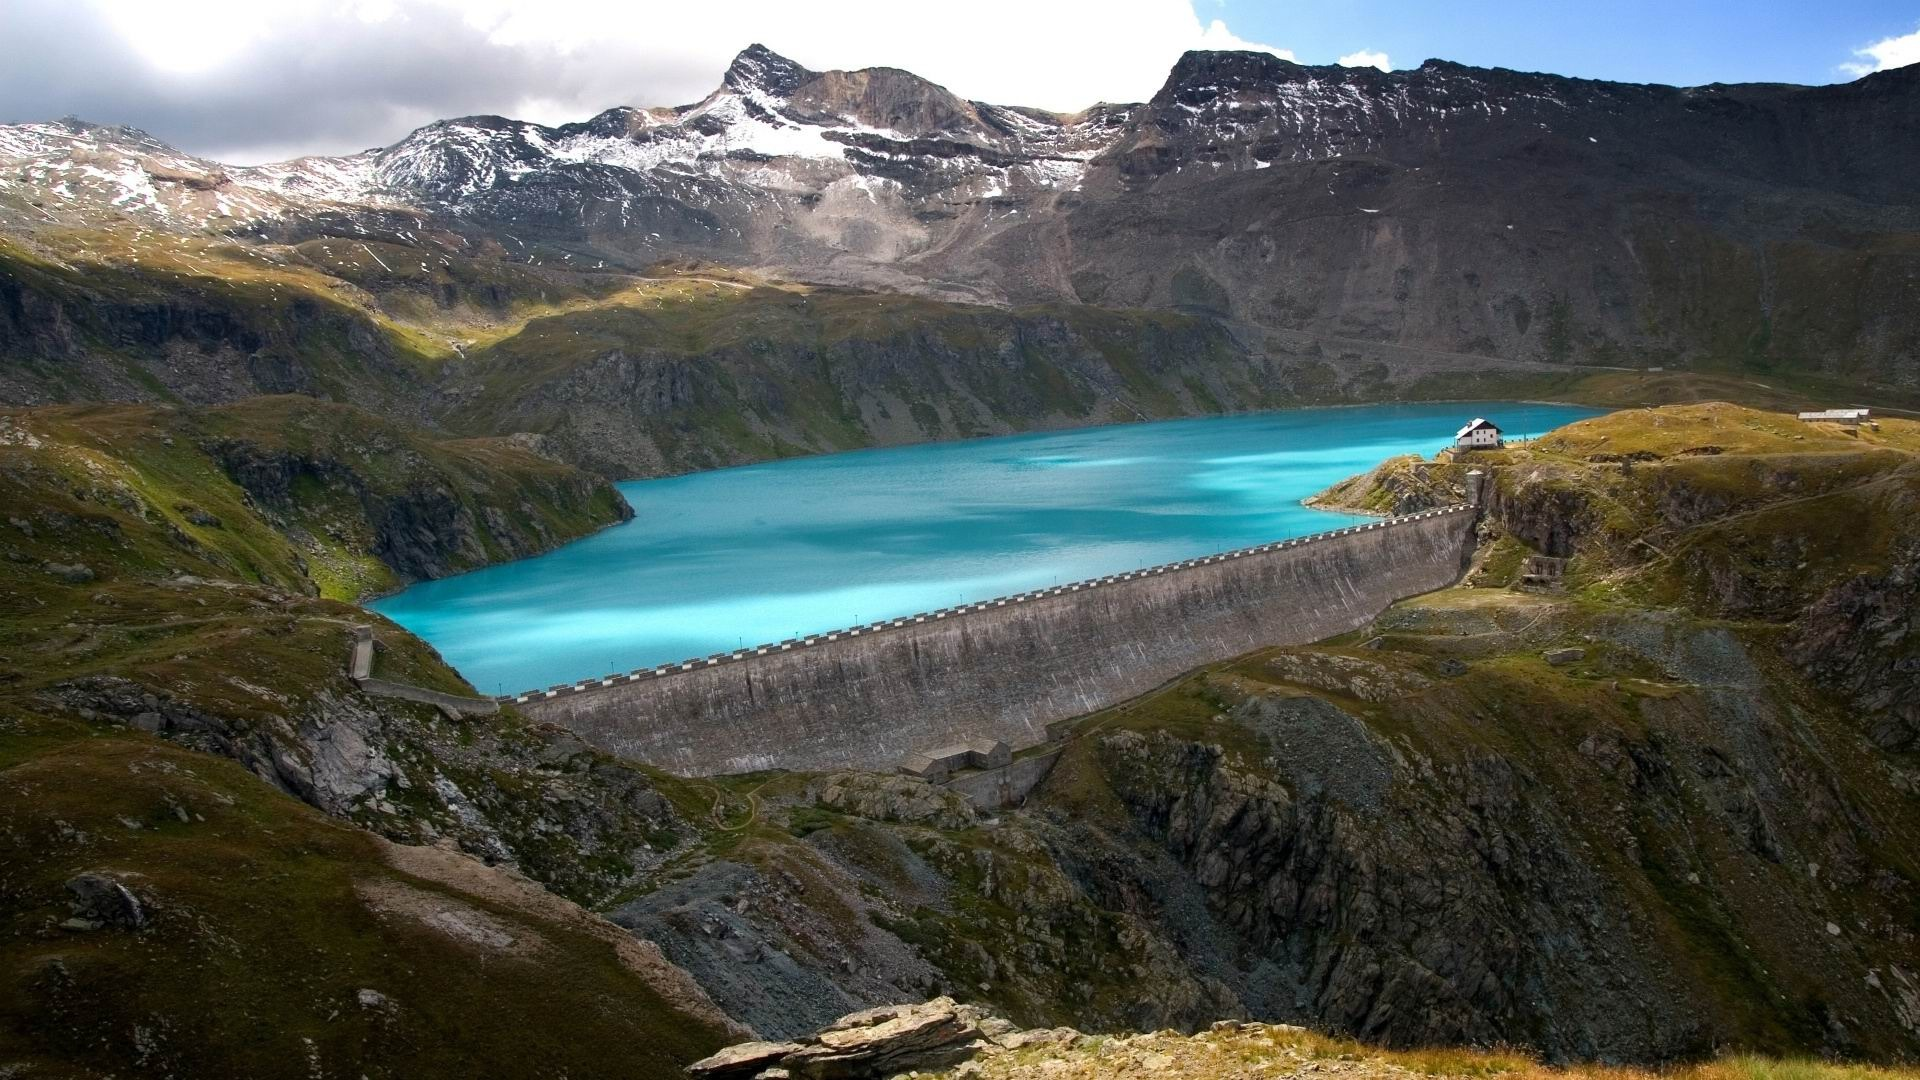 A_spectacular_of_large_dams-2012_landscape_Featured_Wallpaper_1920x1080.jpg